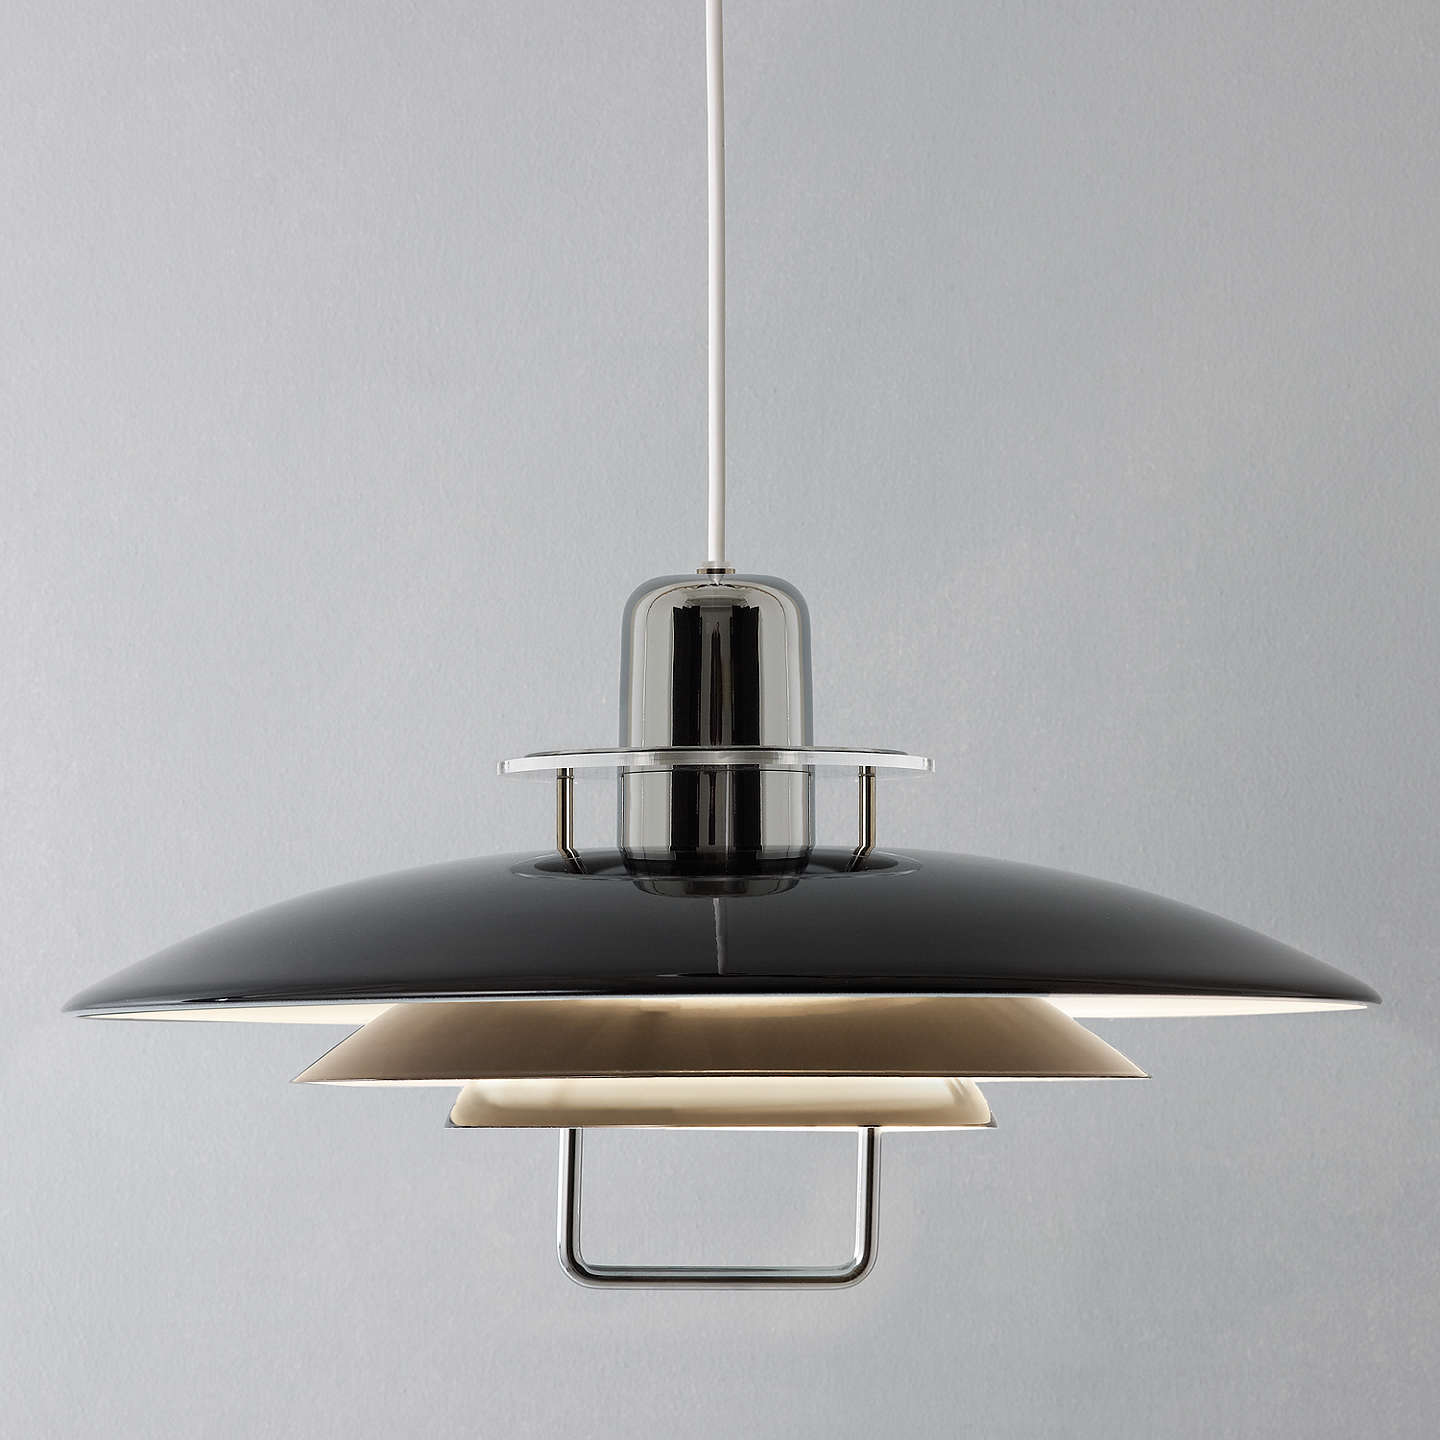 Belid felix rise and fall ceiling light at john lewis buybelid felix rise and fall ceiling light online at johnlewis aloadofball Image collections